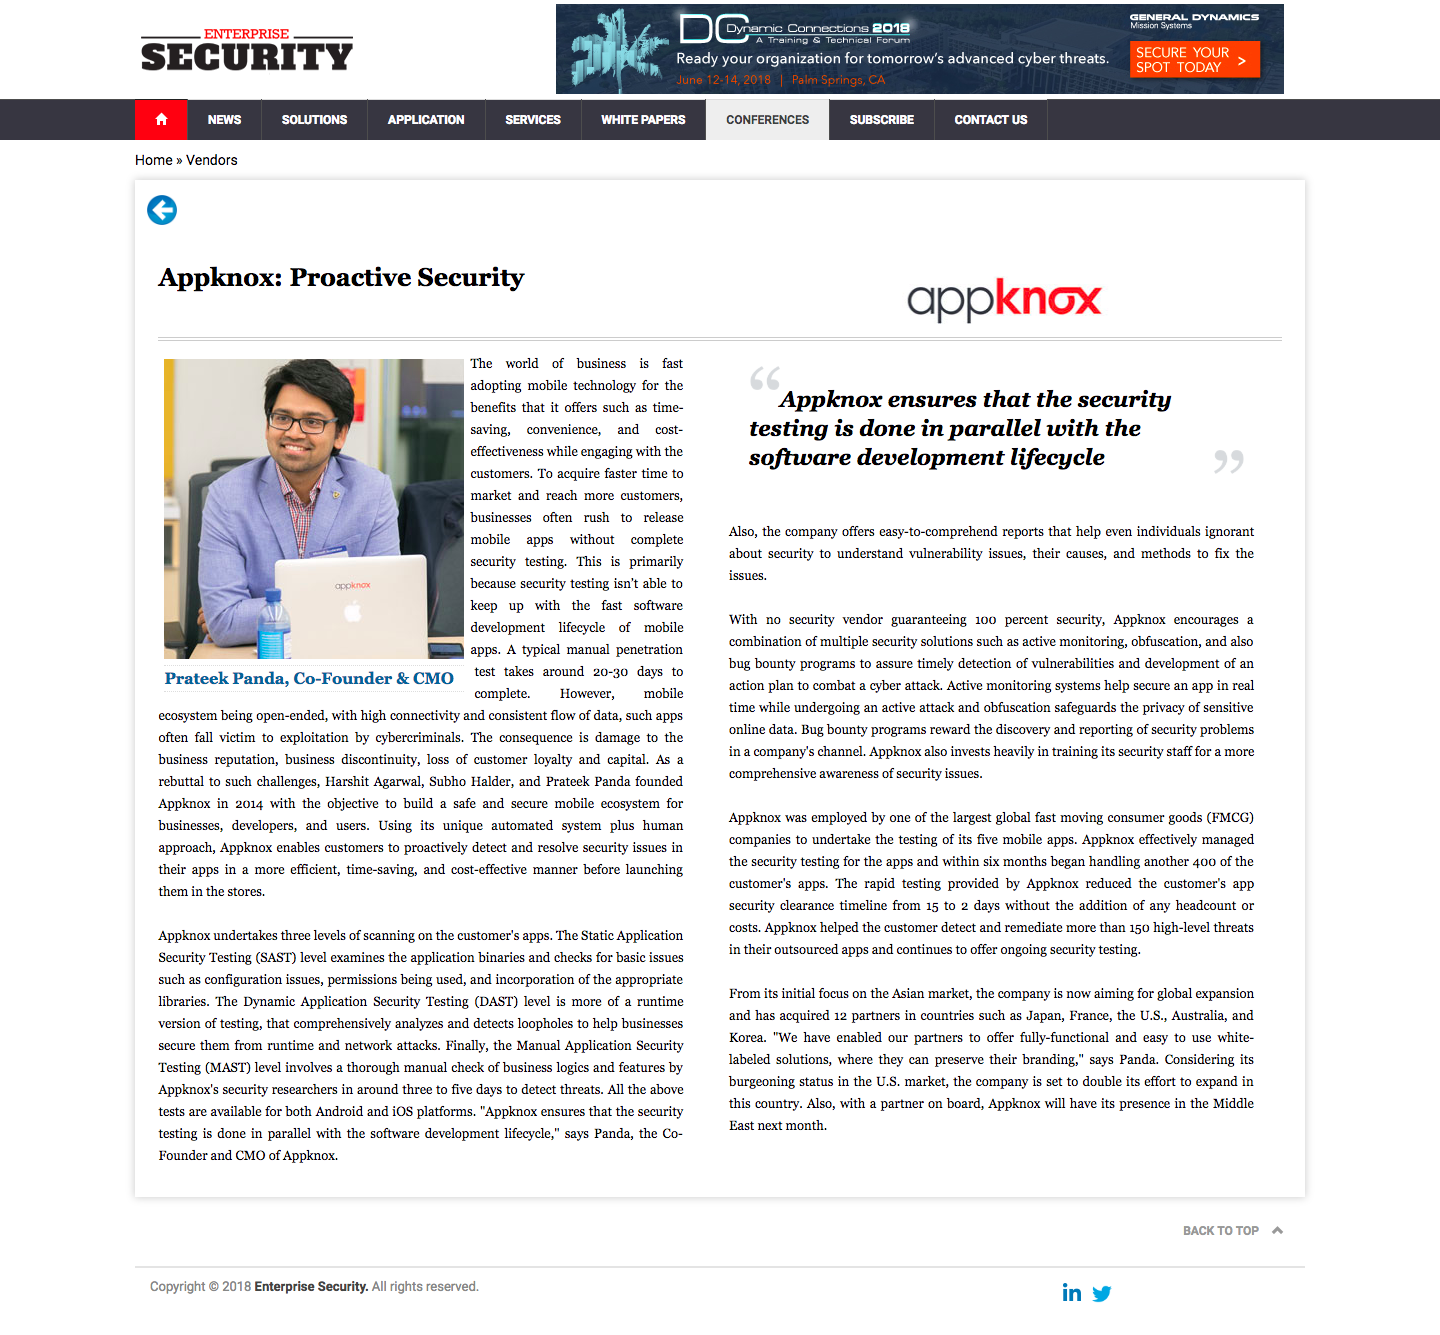 Appknox Wins a Spot in the Top 10 Vulnerability Management Solution Providers of 2018